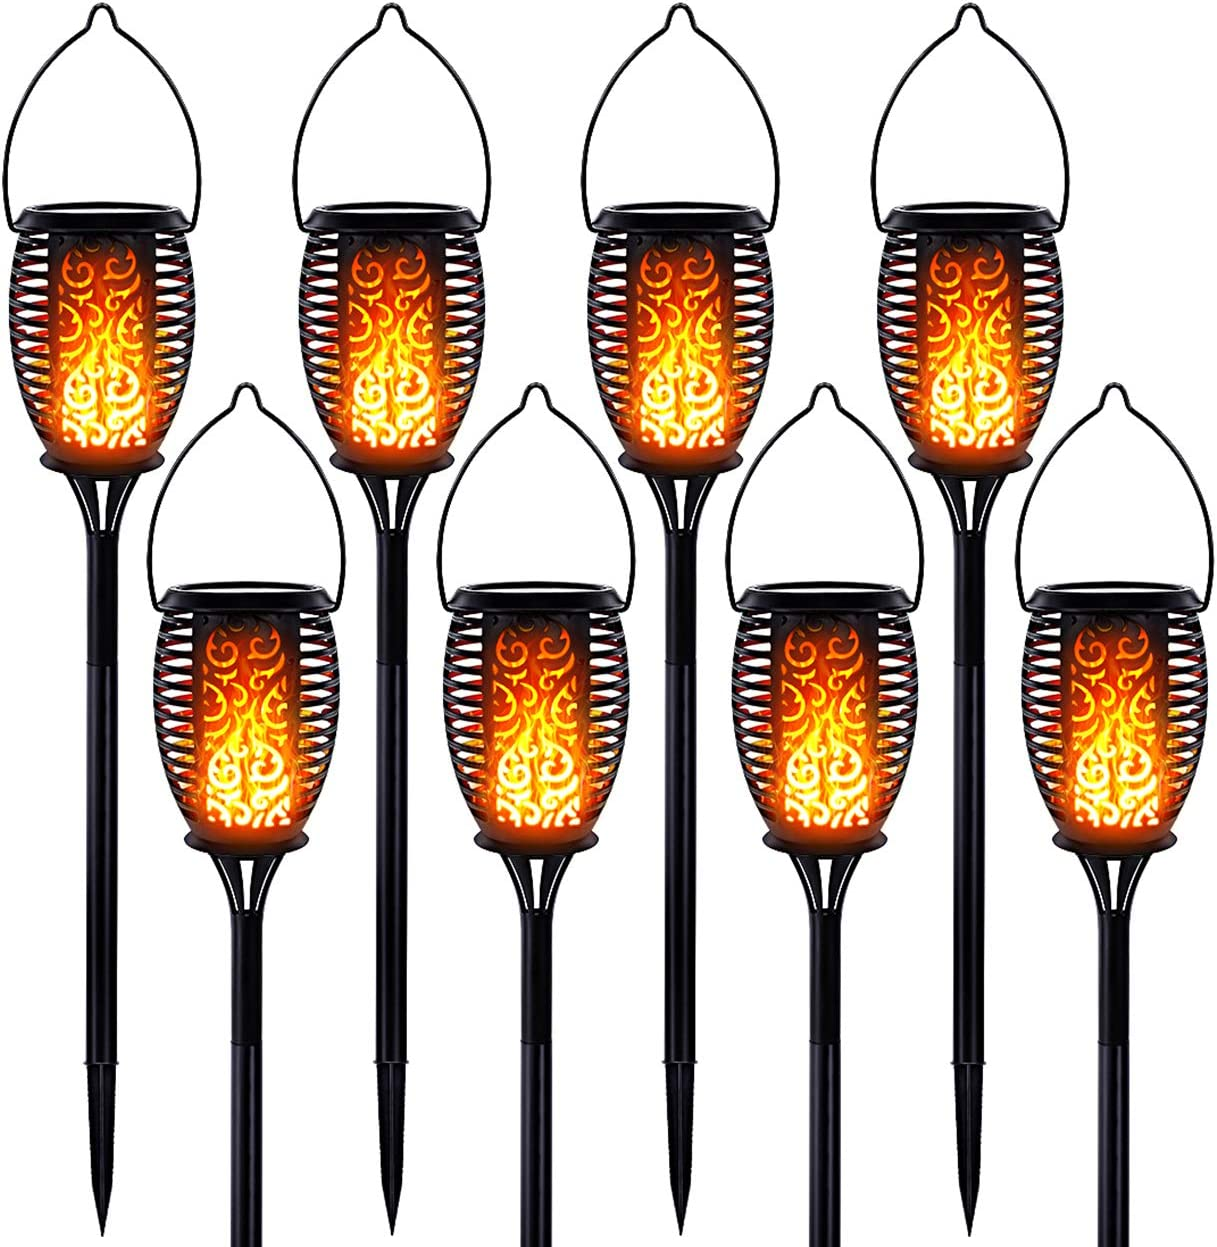 LazyBuddy Solar Torch Lights with Flickering Flame, Solar Hanging Lanterns Outdoor, Upgraded 8 Pack Torches 3 in 1 LED Solar Garden Light for Pathway Yard Lawn Auto On/Off Landscape Decor Lighting